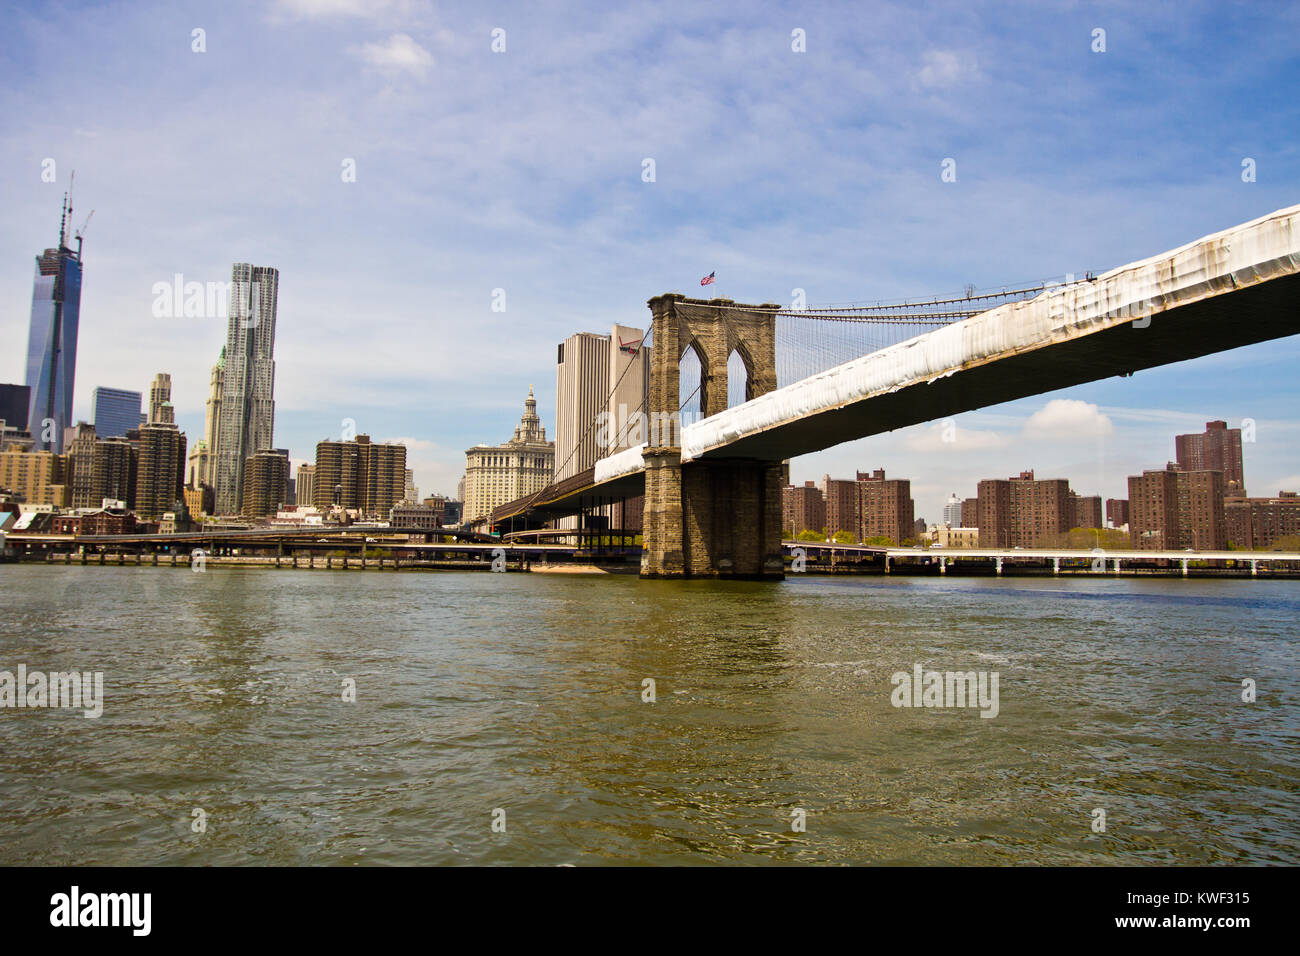 The Brooklyn Bridge is a hybrid cable-stayed/suspension bridge in New York City and is one of the oldest roadway - Stock Image